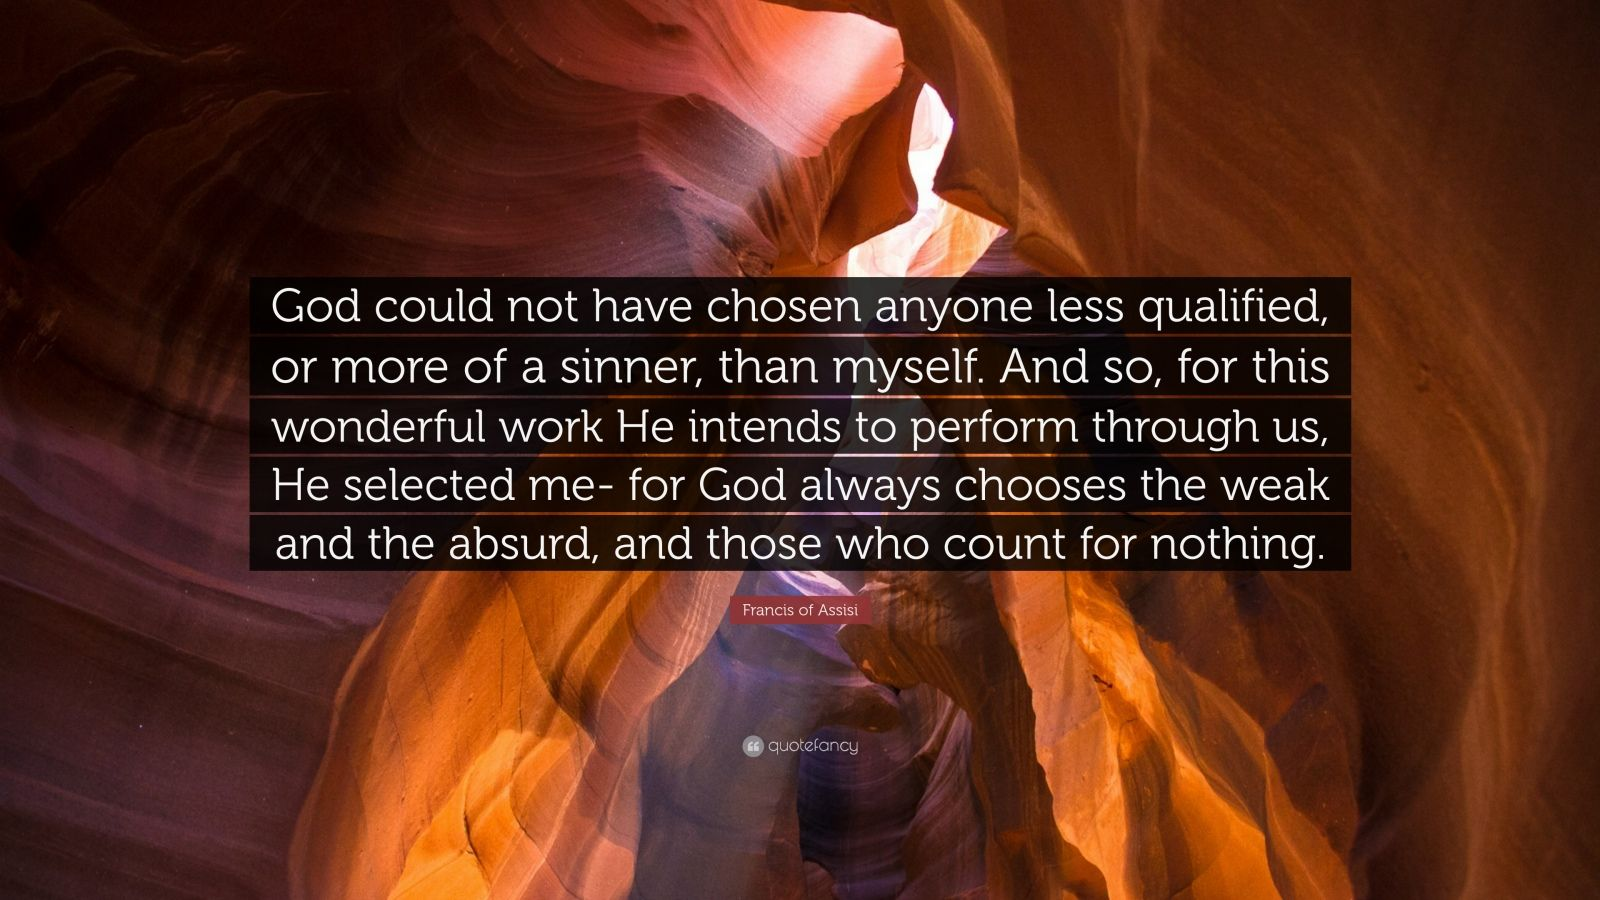 "Francis of Assisi Quote: ""God could not have chosen anyone less qualified, or more of a sinner, than myself. And so, for this wonderful work He intends to perform through us, He selected me- for God always chooses the weak and the absurd, and those who count for nothing."""